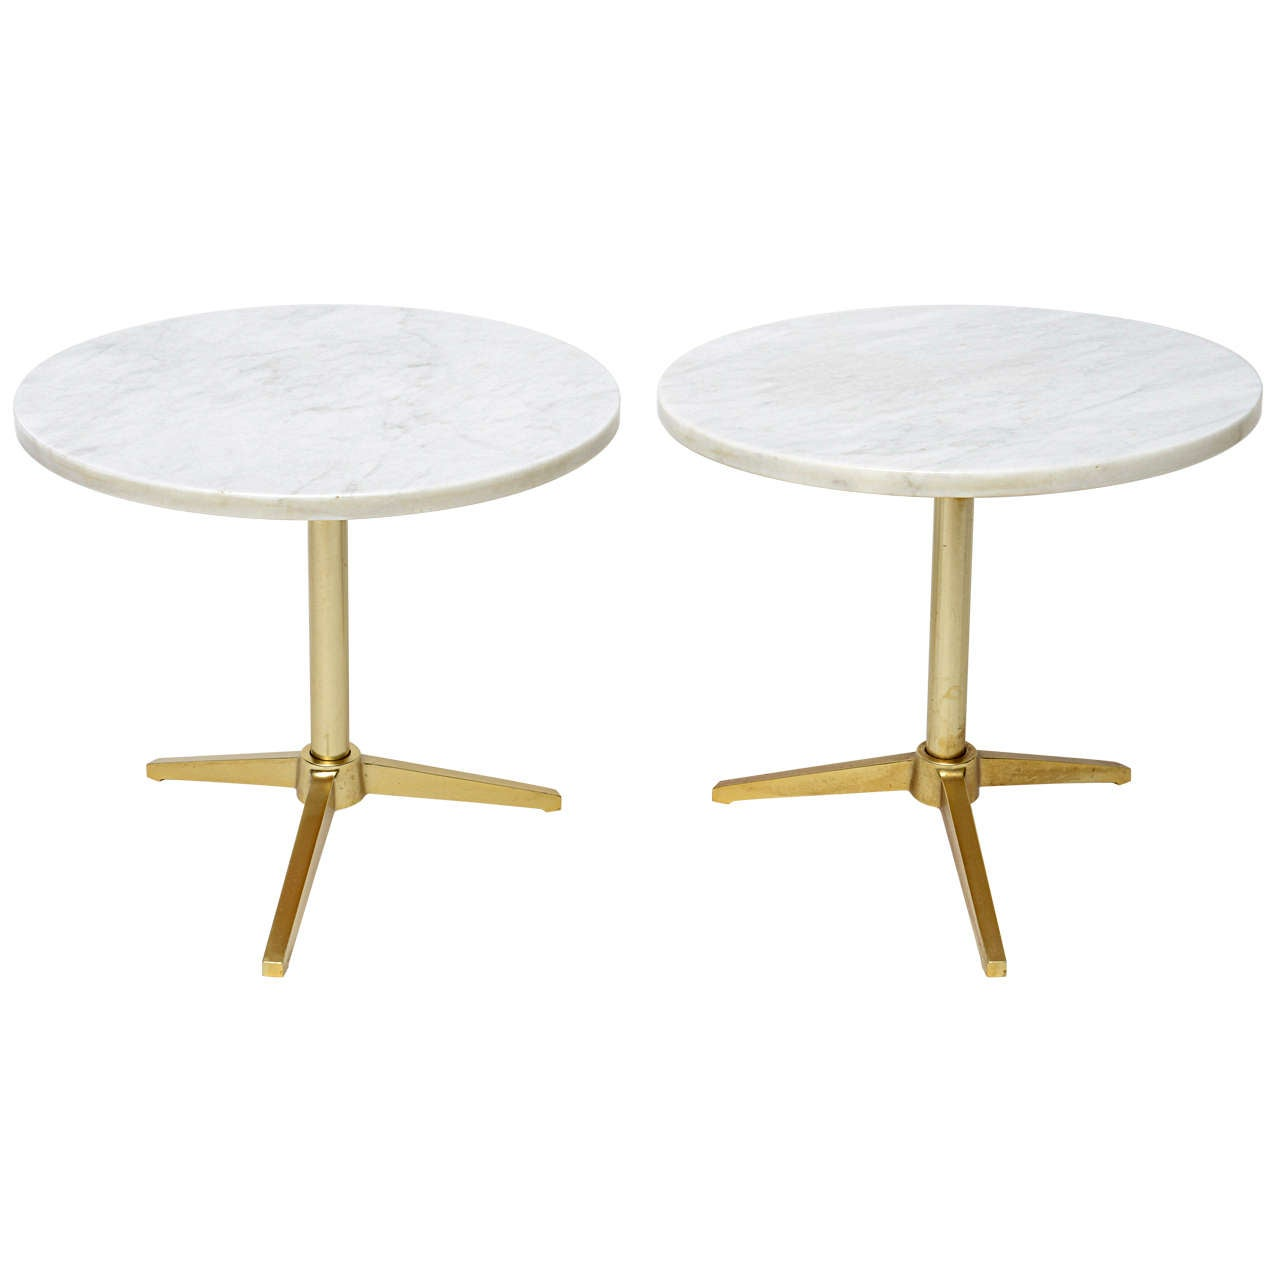 1960s Stellar Italian Marble Top Brass Base Side Tables 1